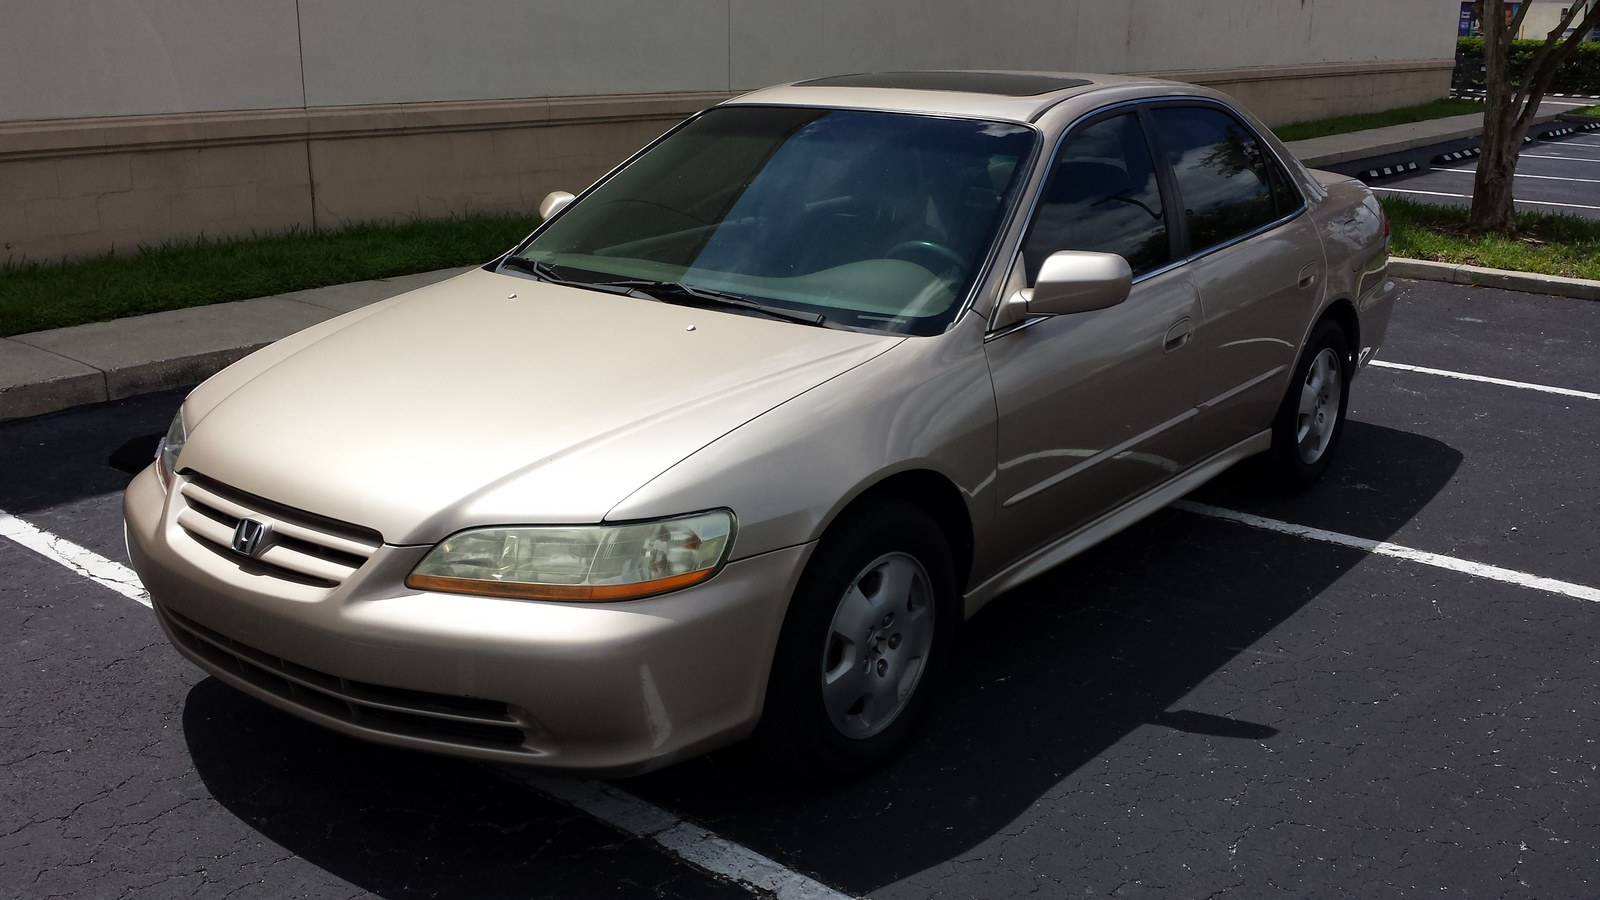 honda accord showed a newer sleeker look for 2001 with